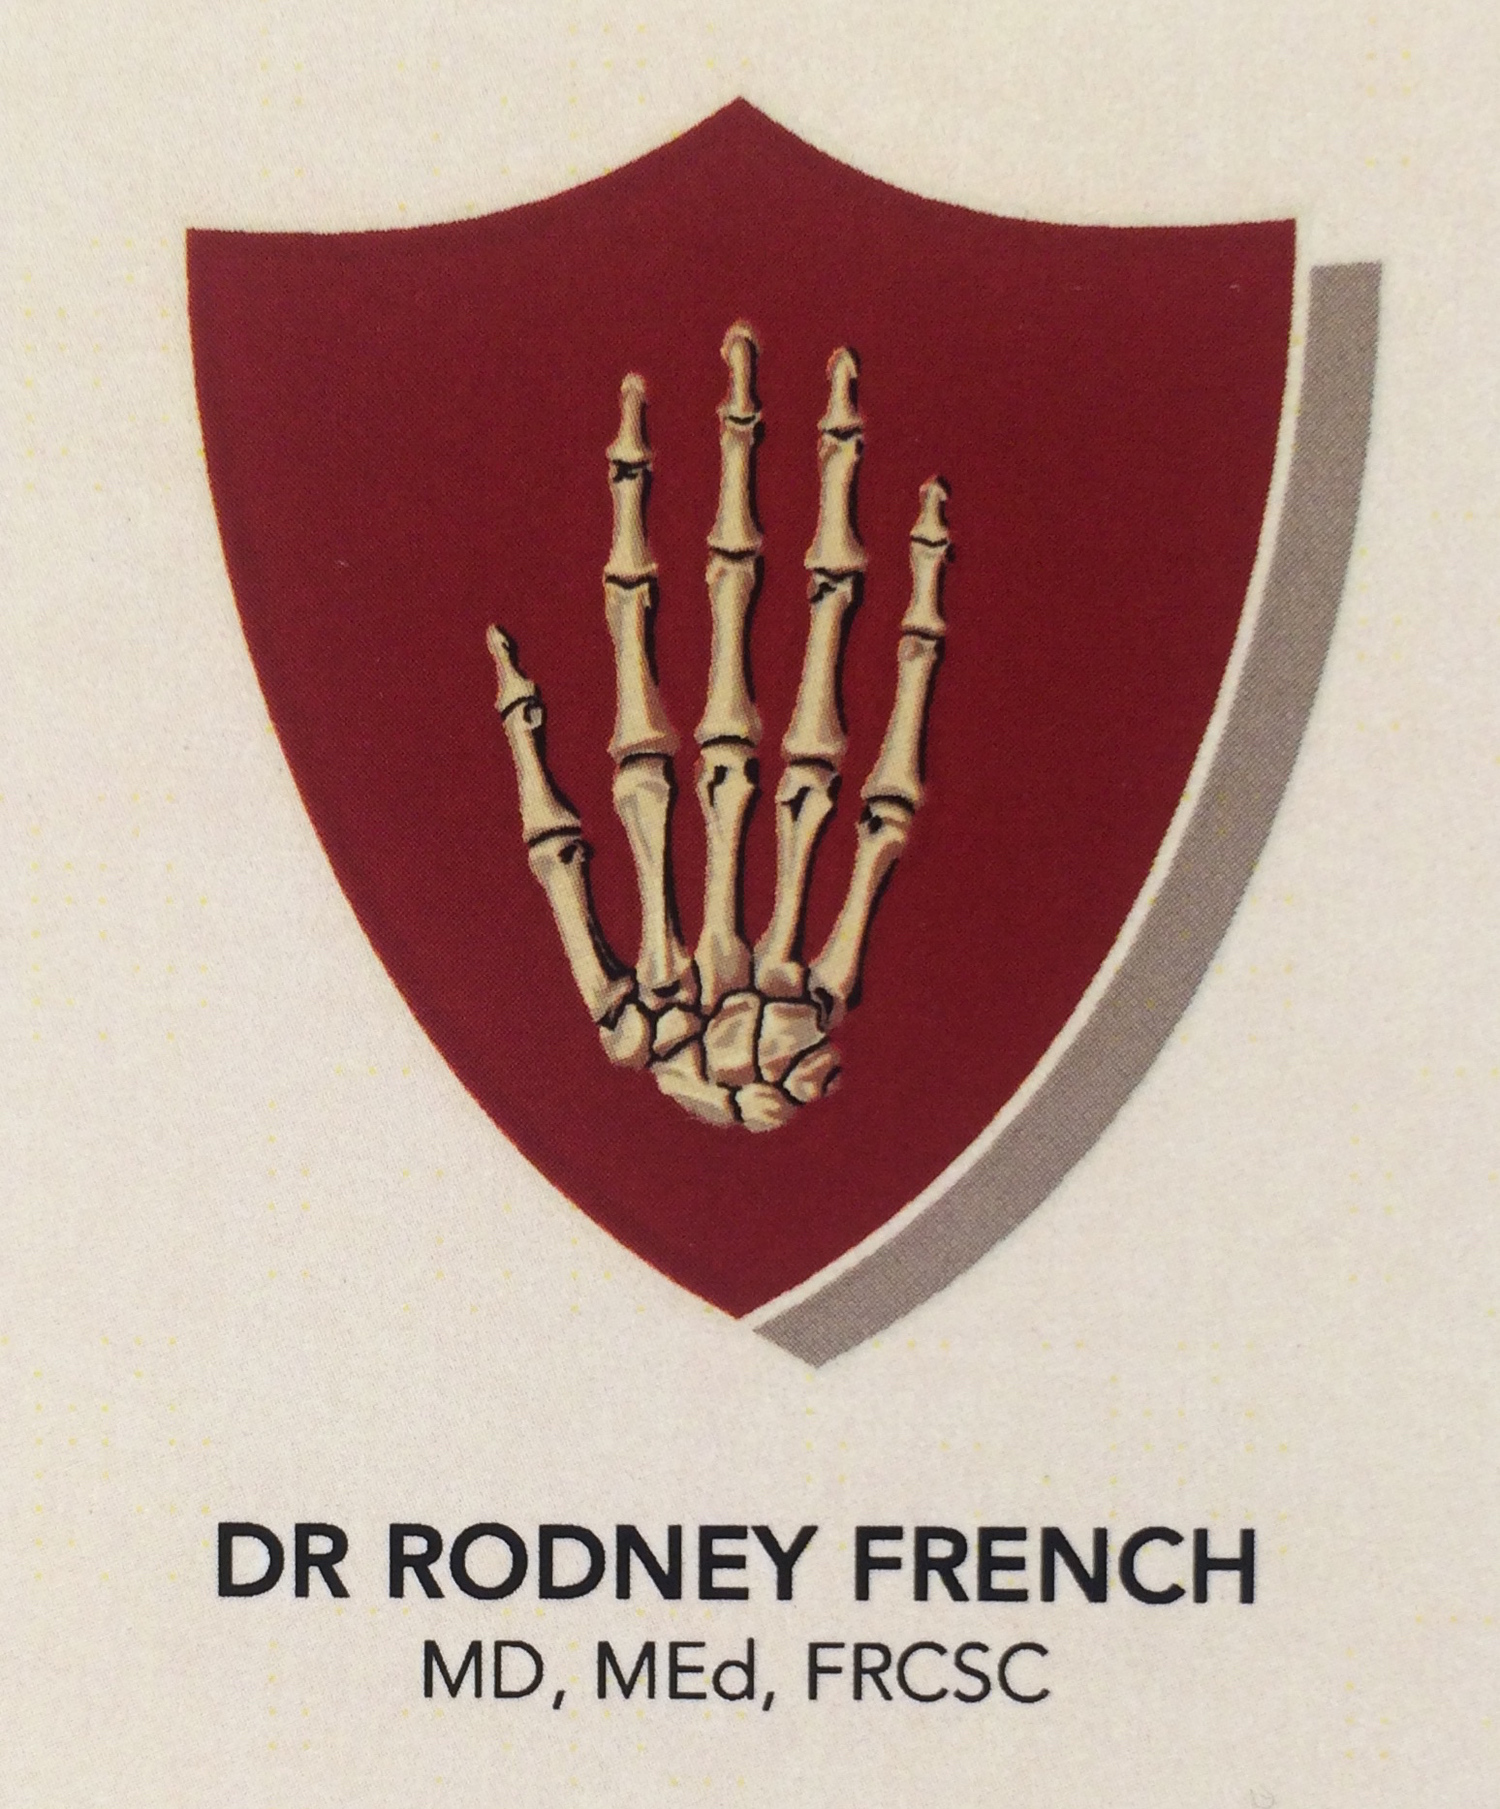 Dr. Rod French